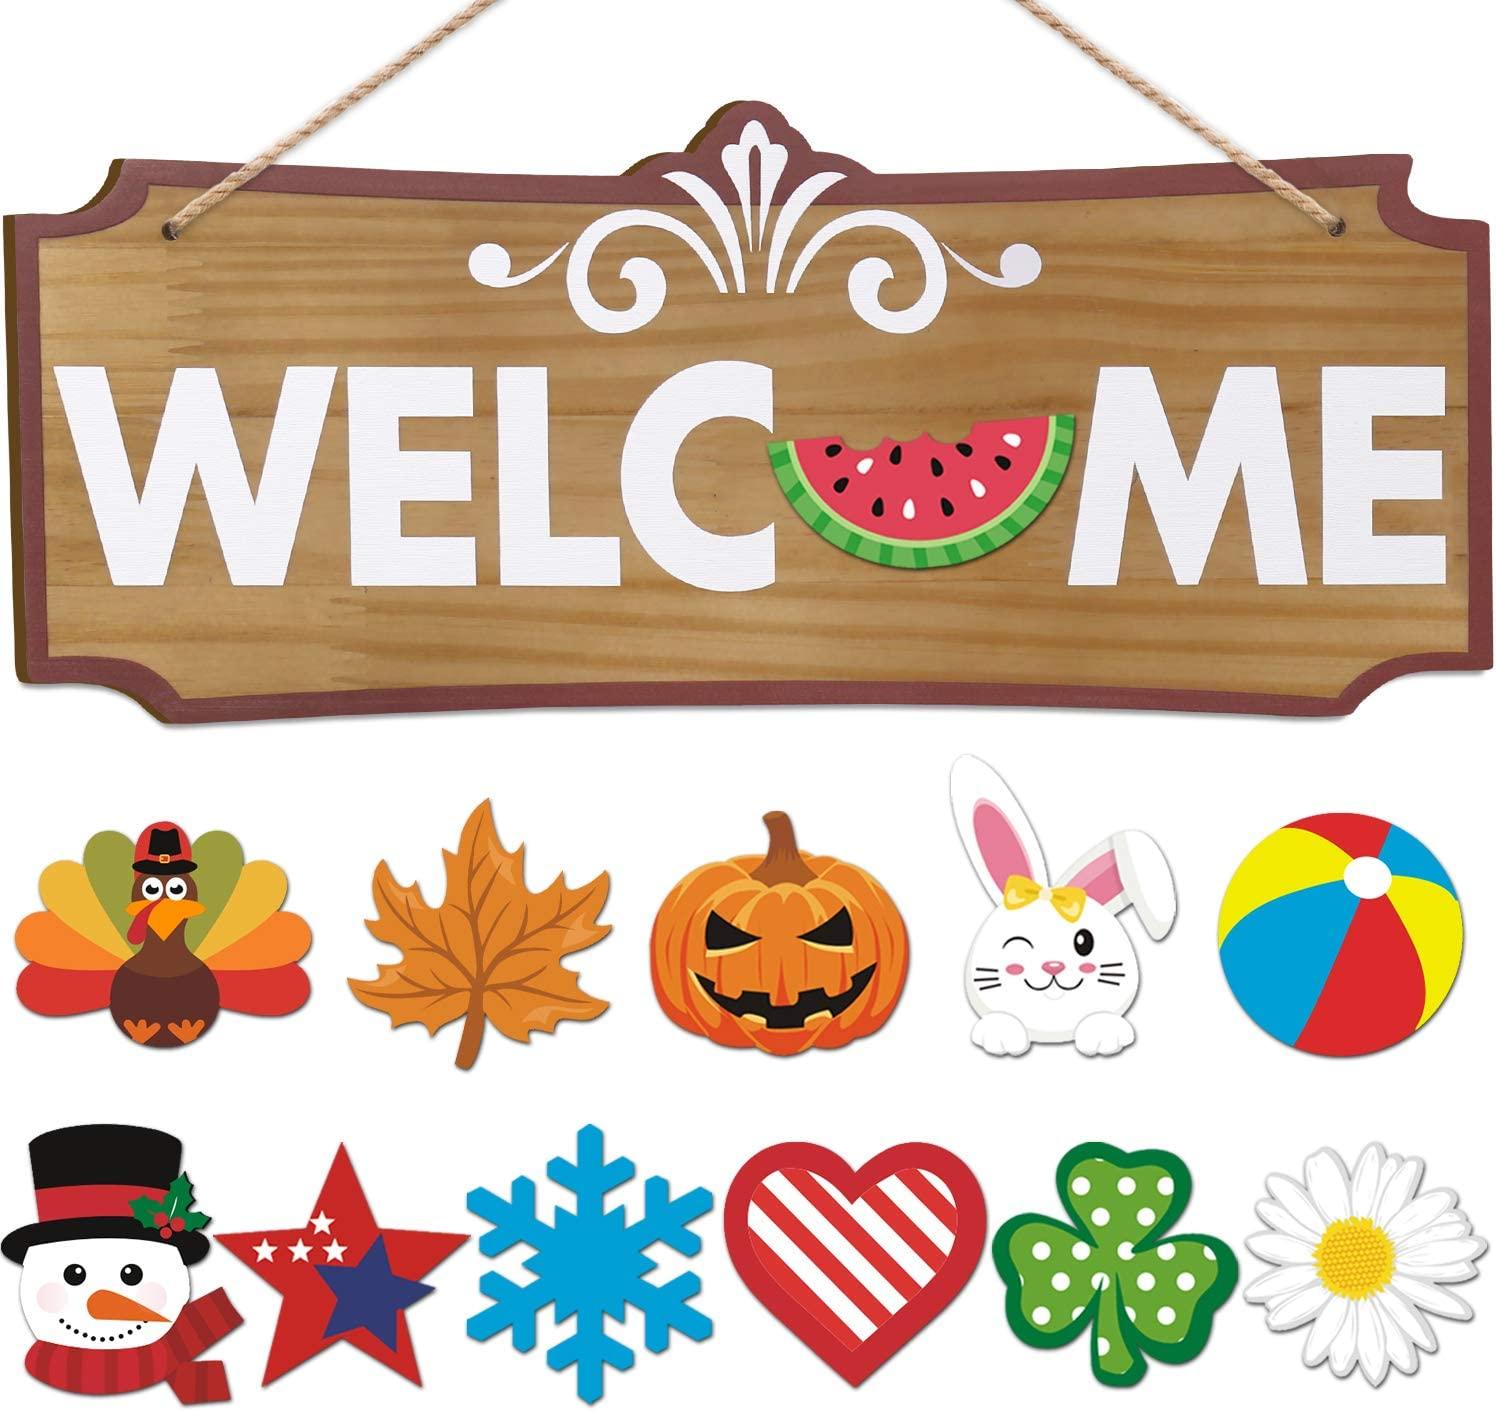 Interchangeable Welcome Sign Seasonal Festival Holiday Welcome Wood Sign for Front Door Decor Wall Hanging Decorations Porch Decorations for Home Spring Summer Fall Winter Decorations